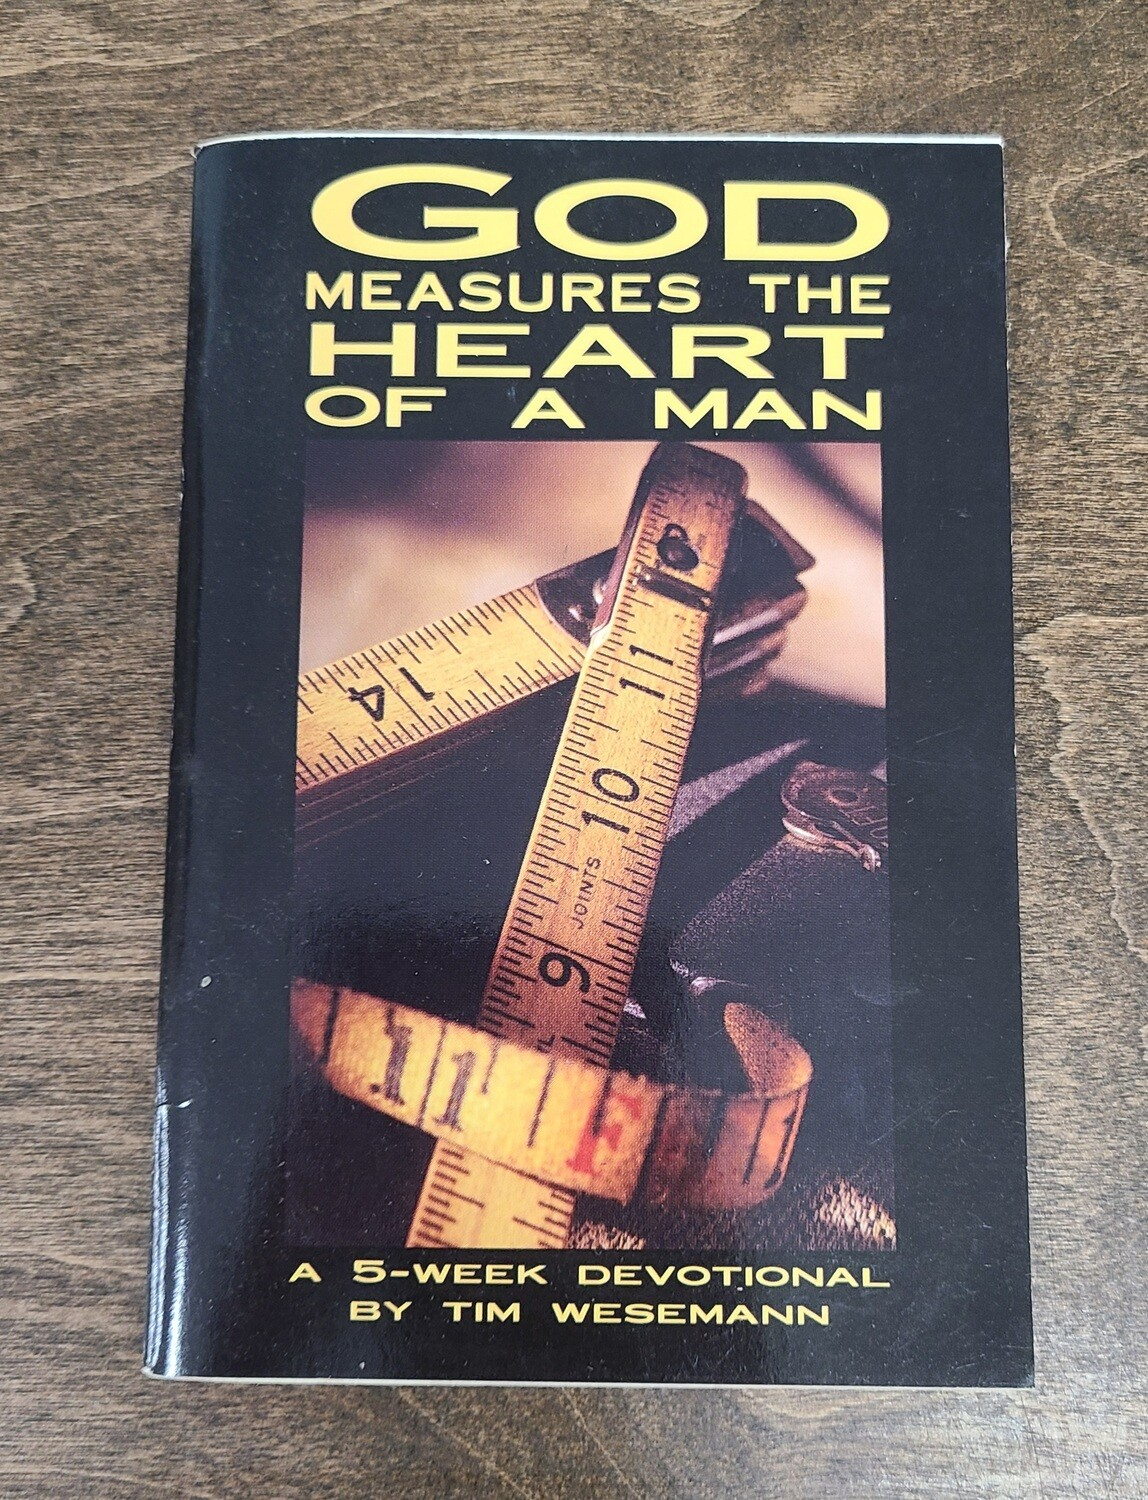 God measures the Heart of a Man by Tim Wesemann